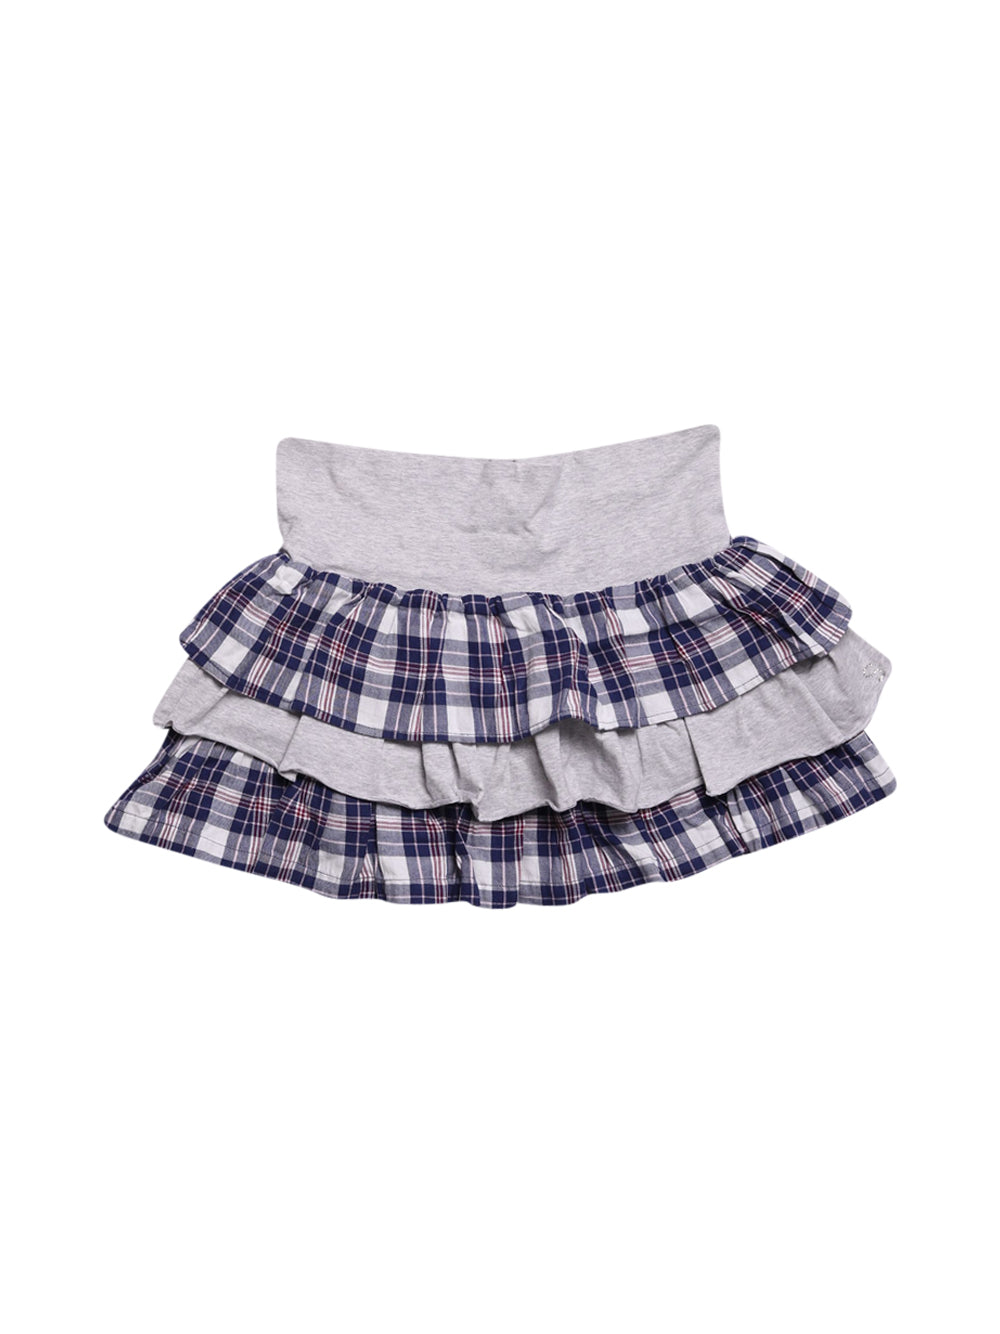 Front photo of Preloved Sarabanda Grey Girl's skirt - size 14-16 yrs